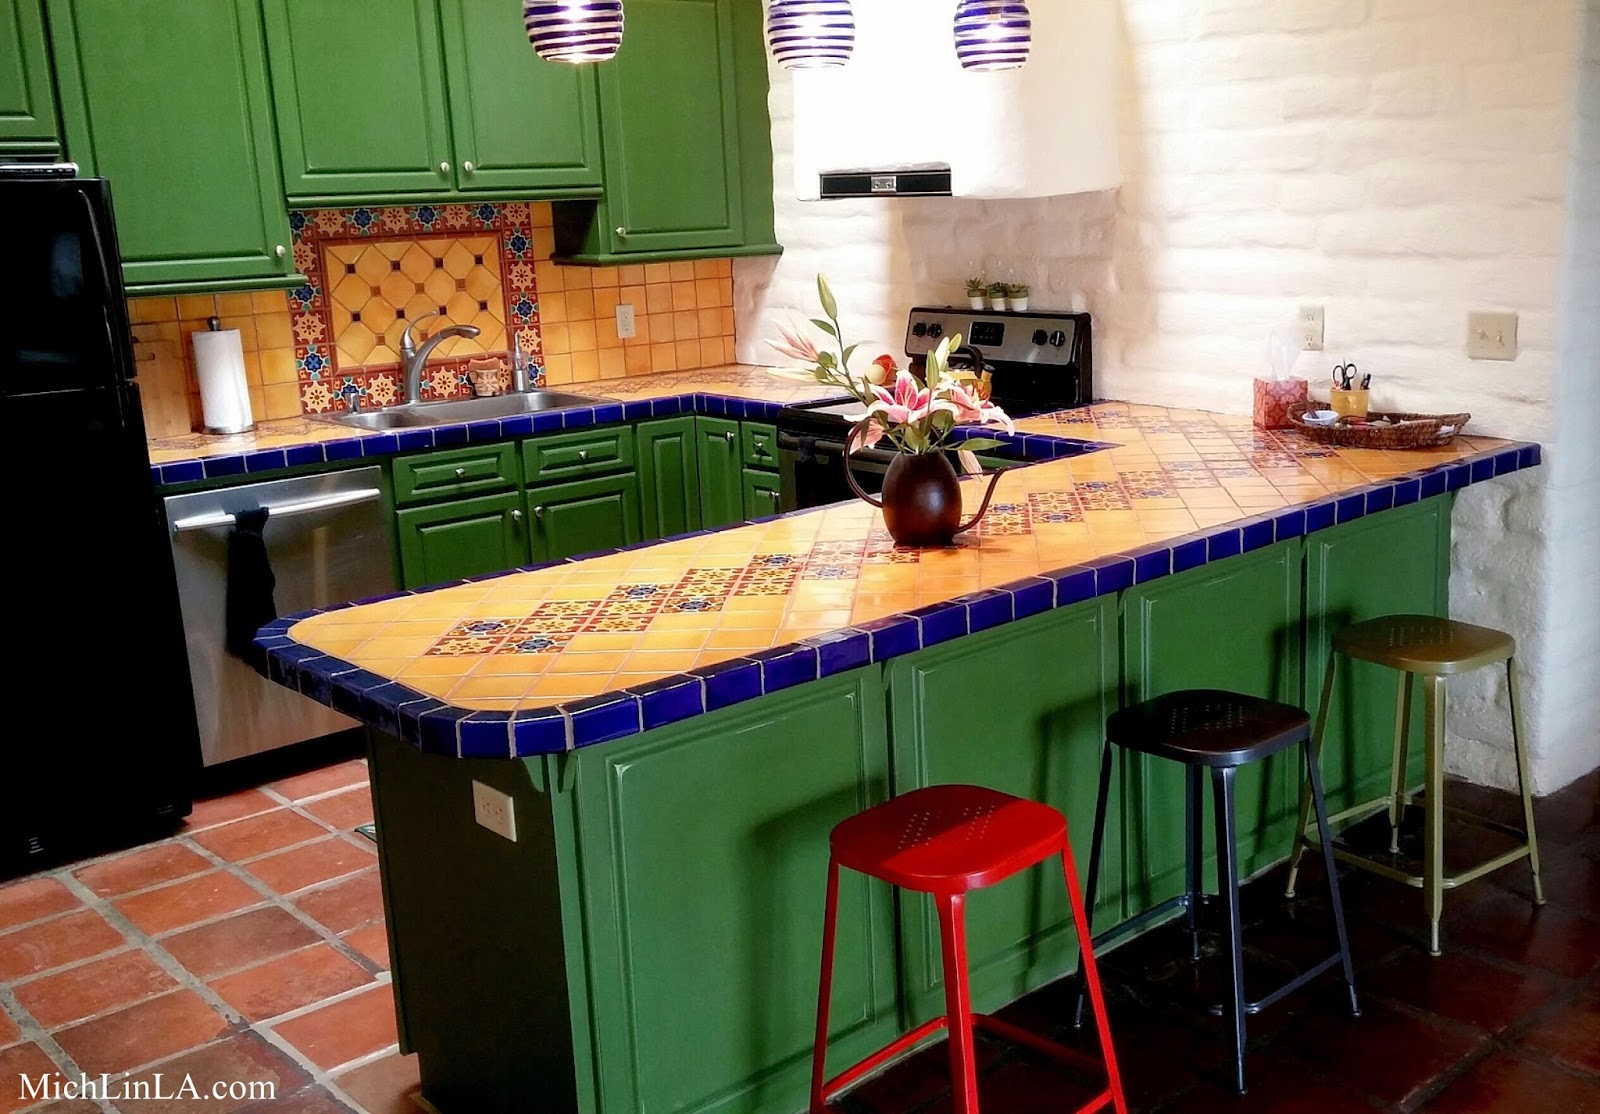 Mich L in LA My Mexican Tiled Kitchen